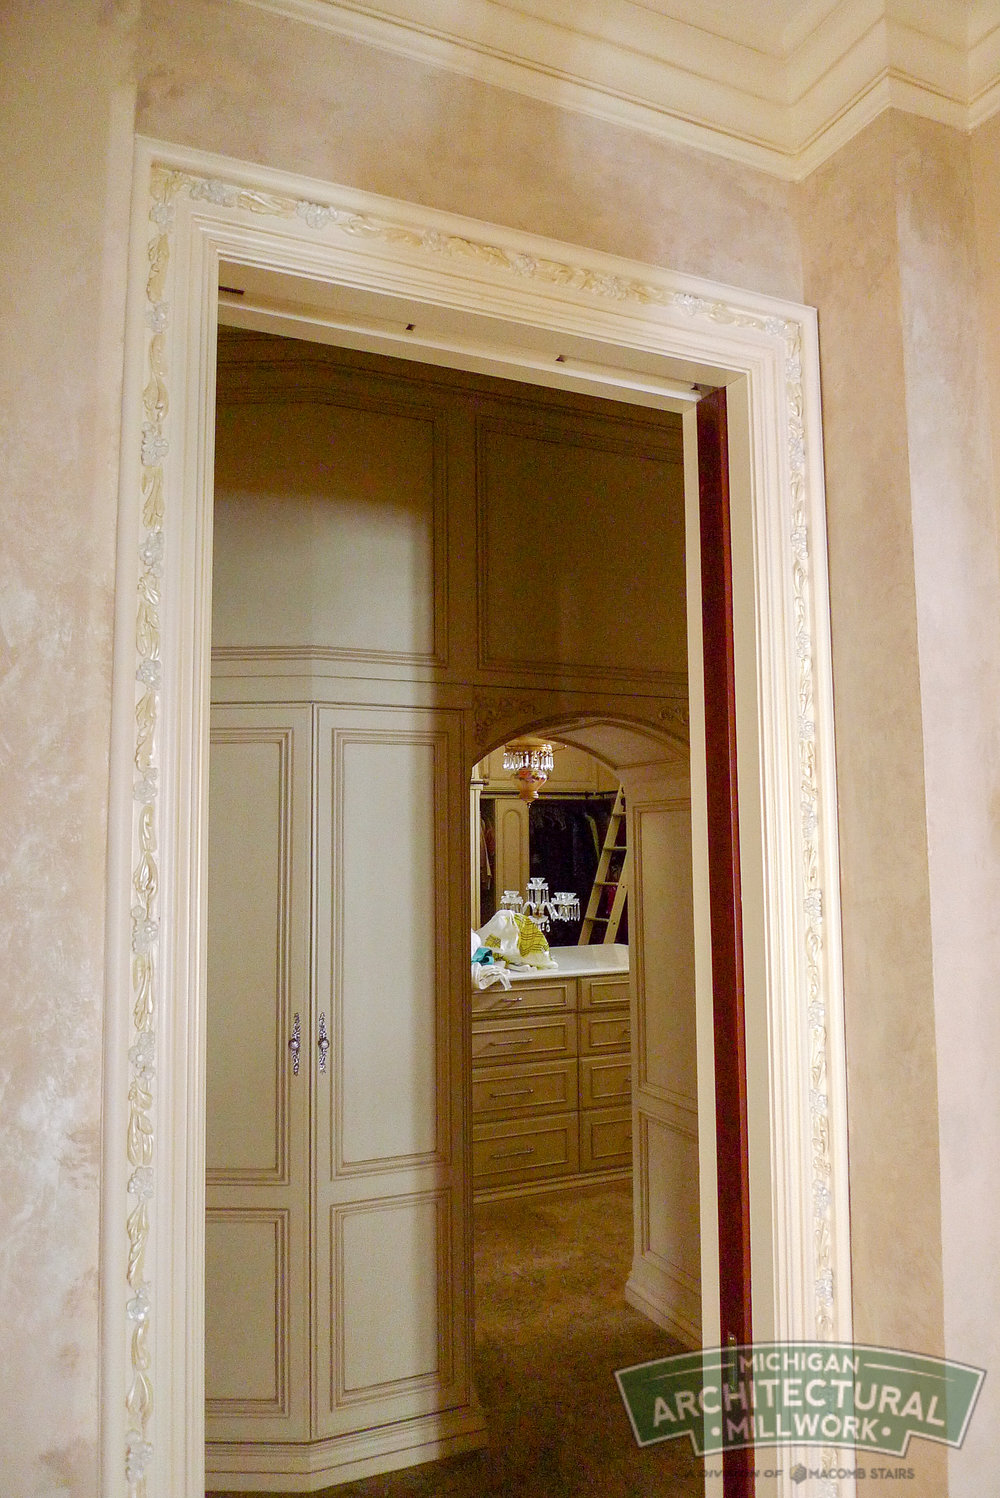 Michigan Architectural Millwork- Moulding and Millwork Photo-151.jpg